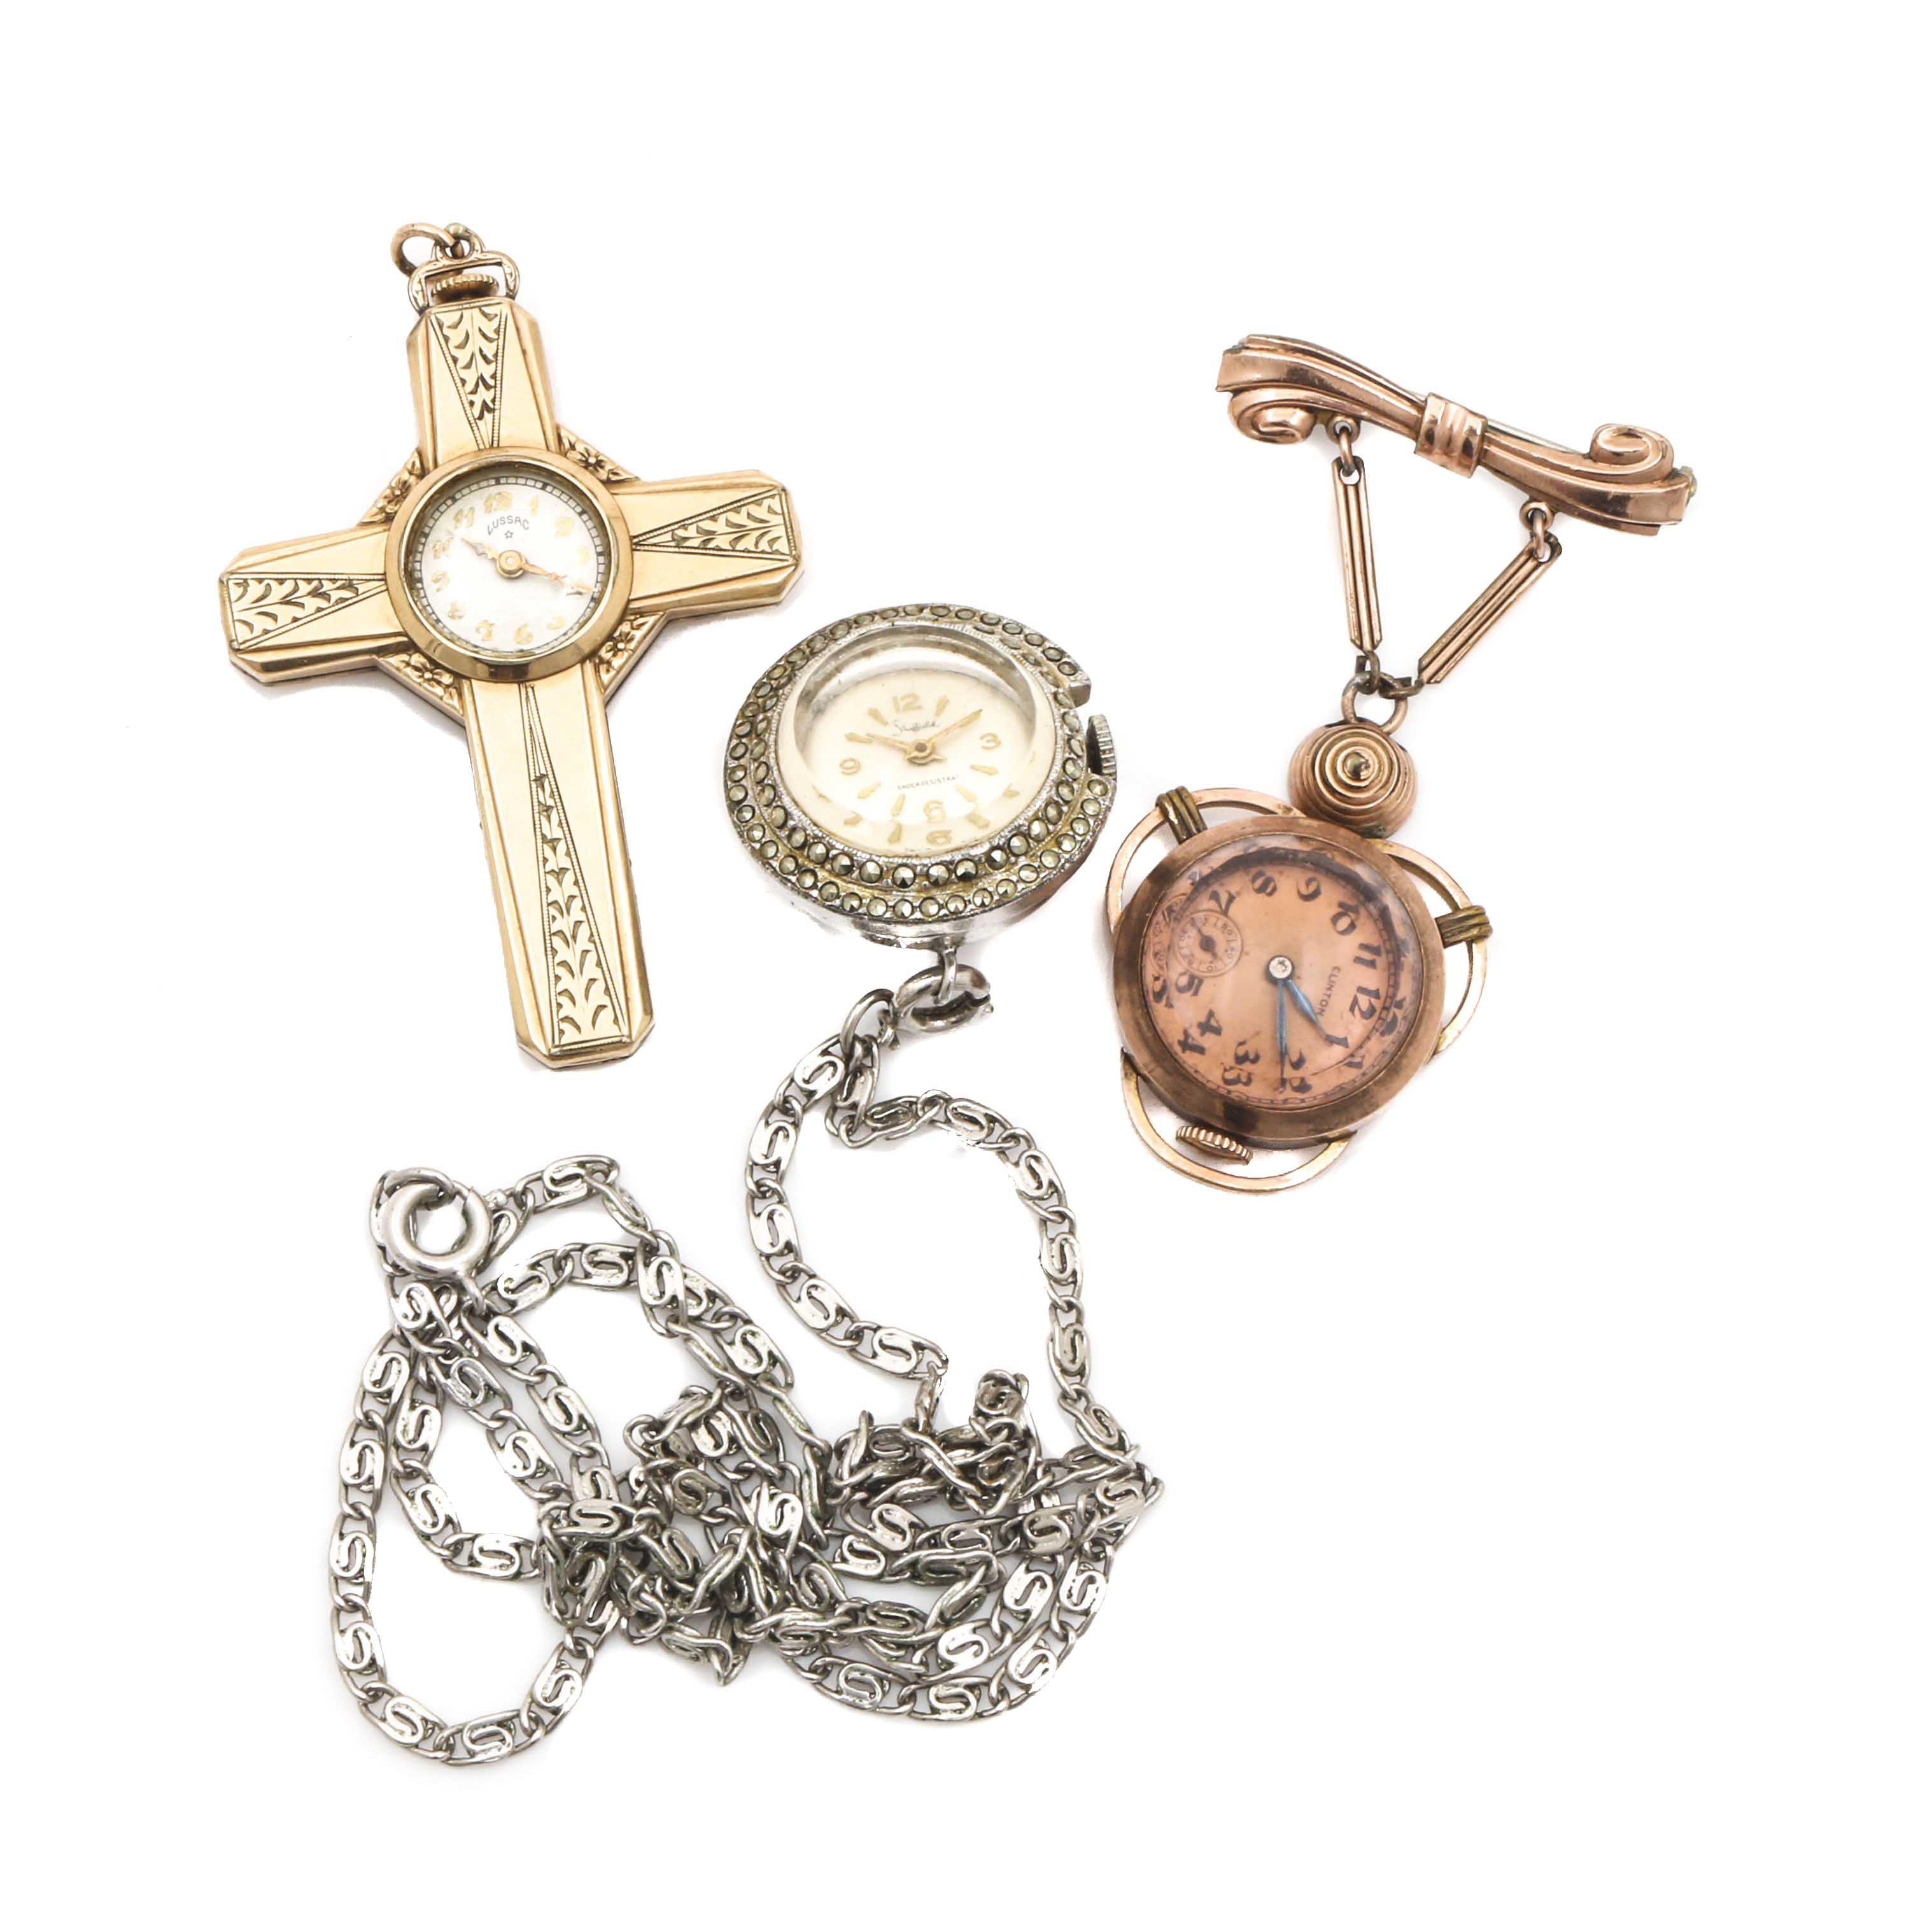 Yellow Tone, Rose Tone and Silver Tone Watch Brooch and Pendants